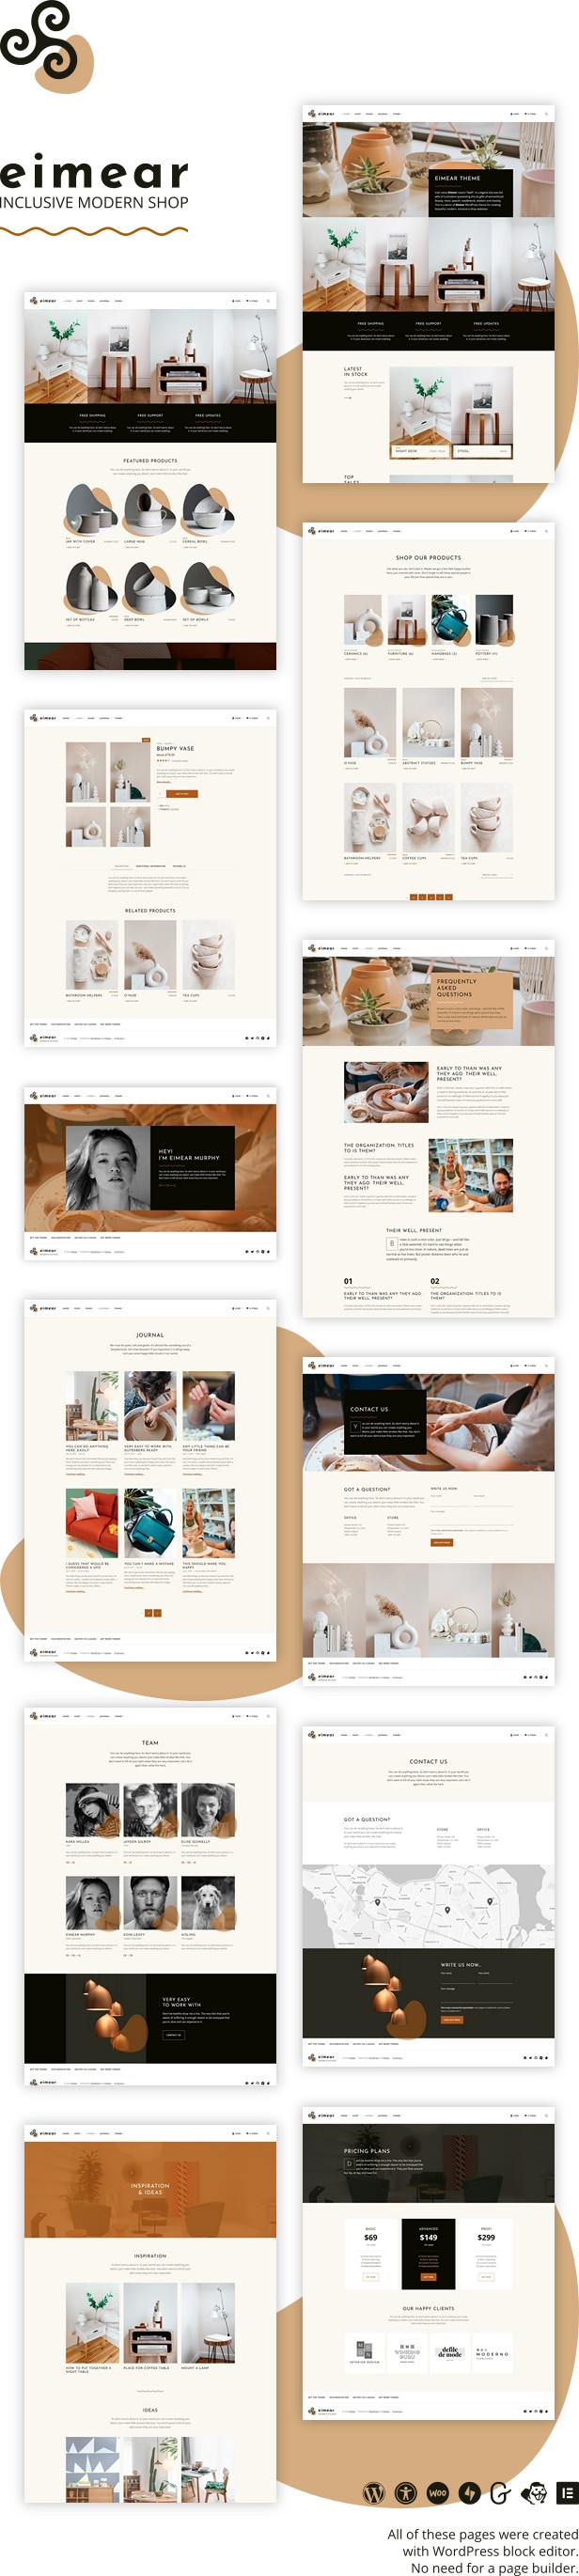 Eimear WordPress theme